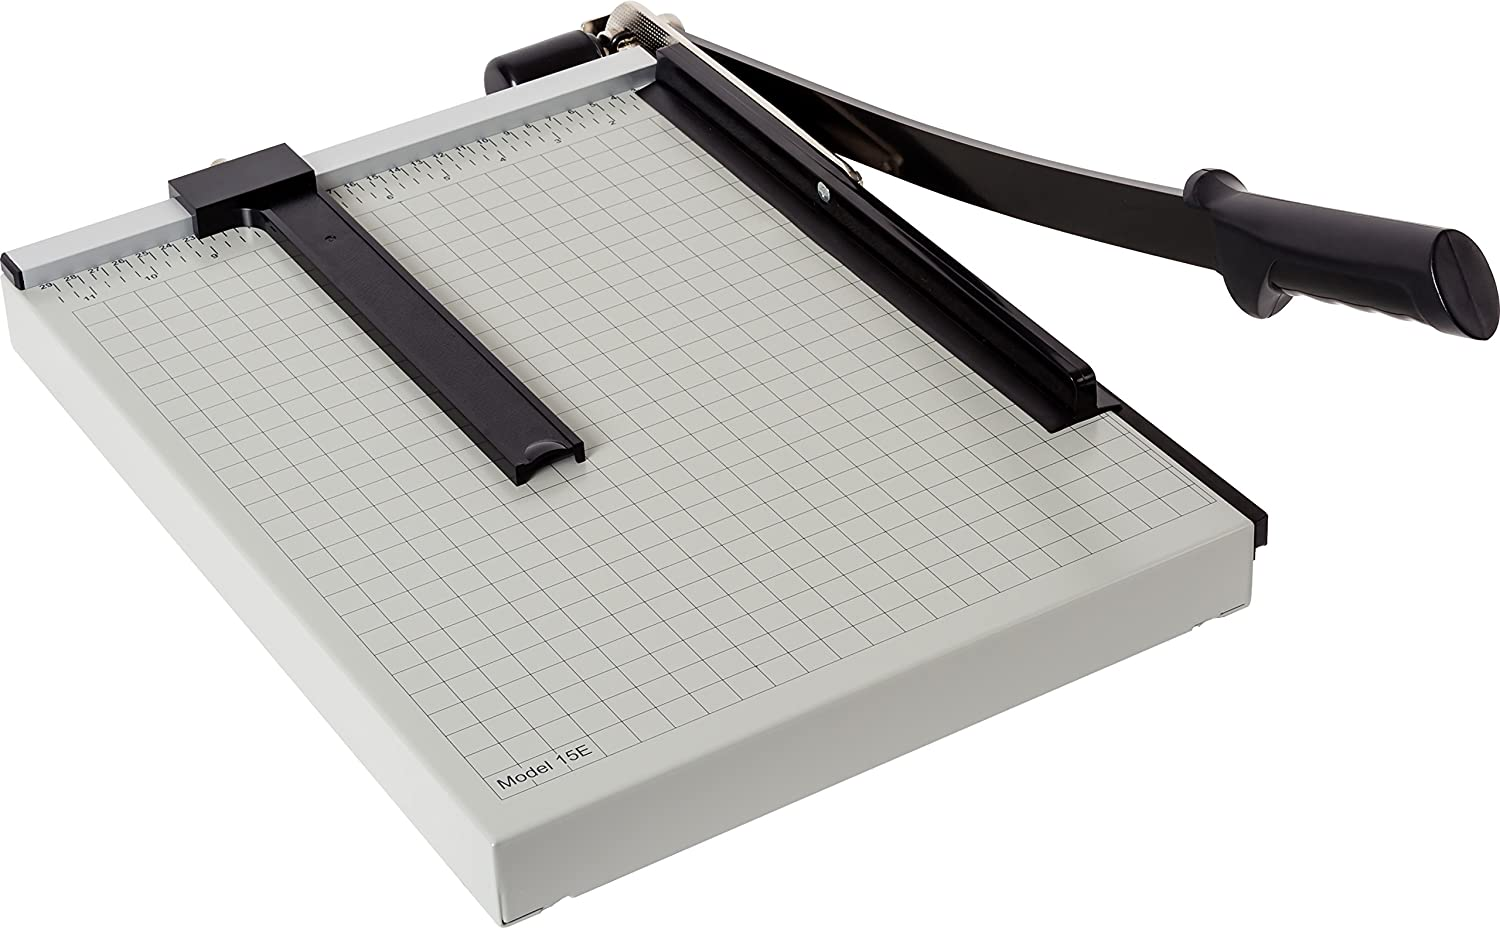 """Dahle 15e Vantage Paper Trimmer, 15"""" Cut Length, 15 Sheet, Automatic Clamp, Adjustable Guide, Metal Base with 1/2"""" Gridlines, Guillotine Paper Cutter"""